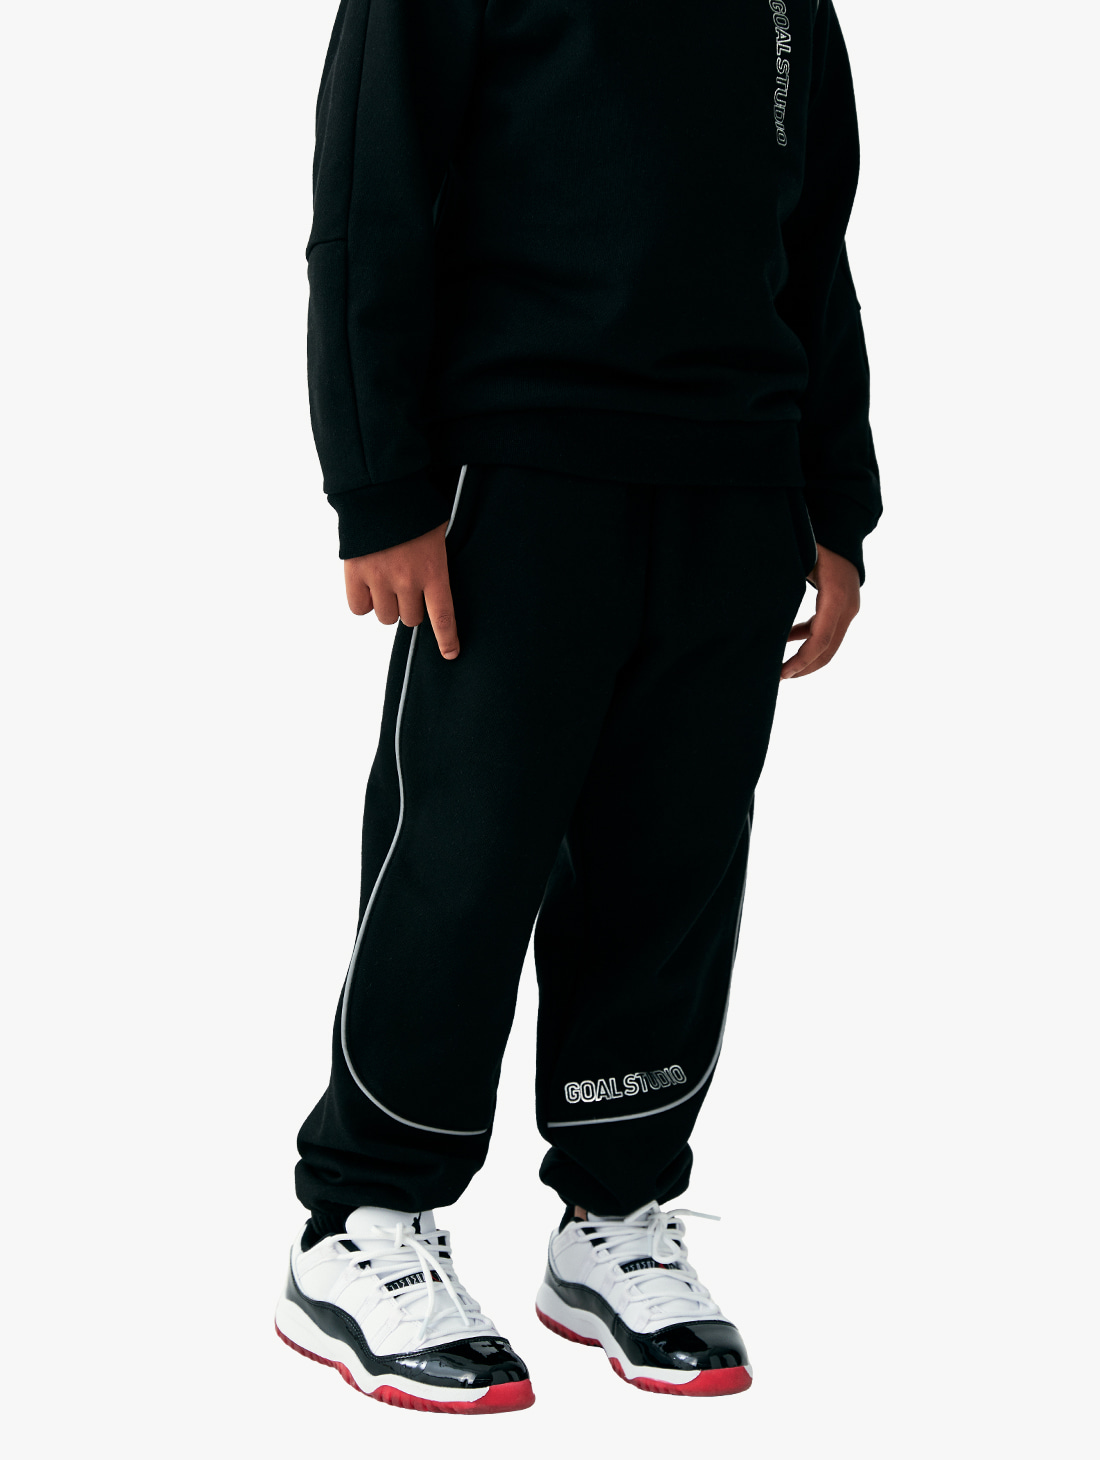 (KIDS) PIPING JOGGER PANTS (3 Colors)